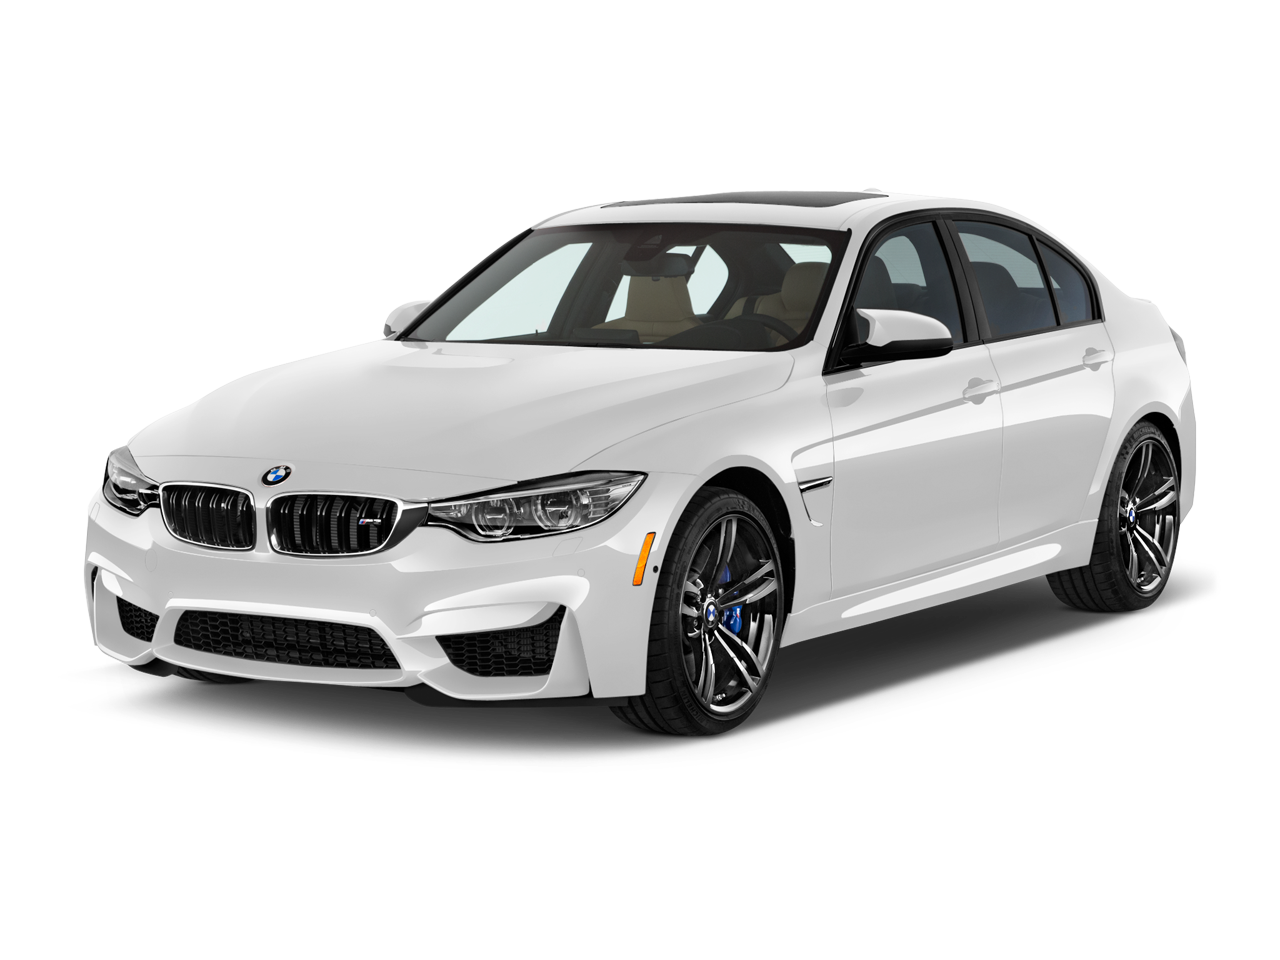 Bmw M3 Clipart PNG Image